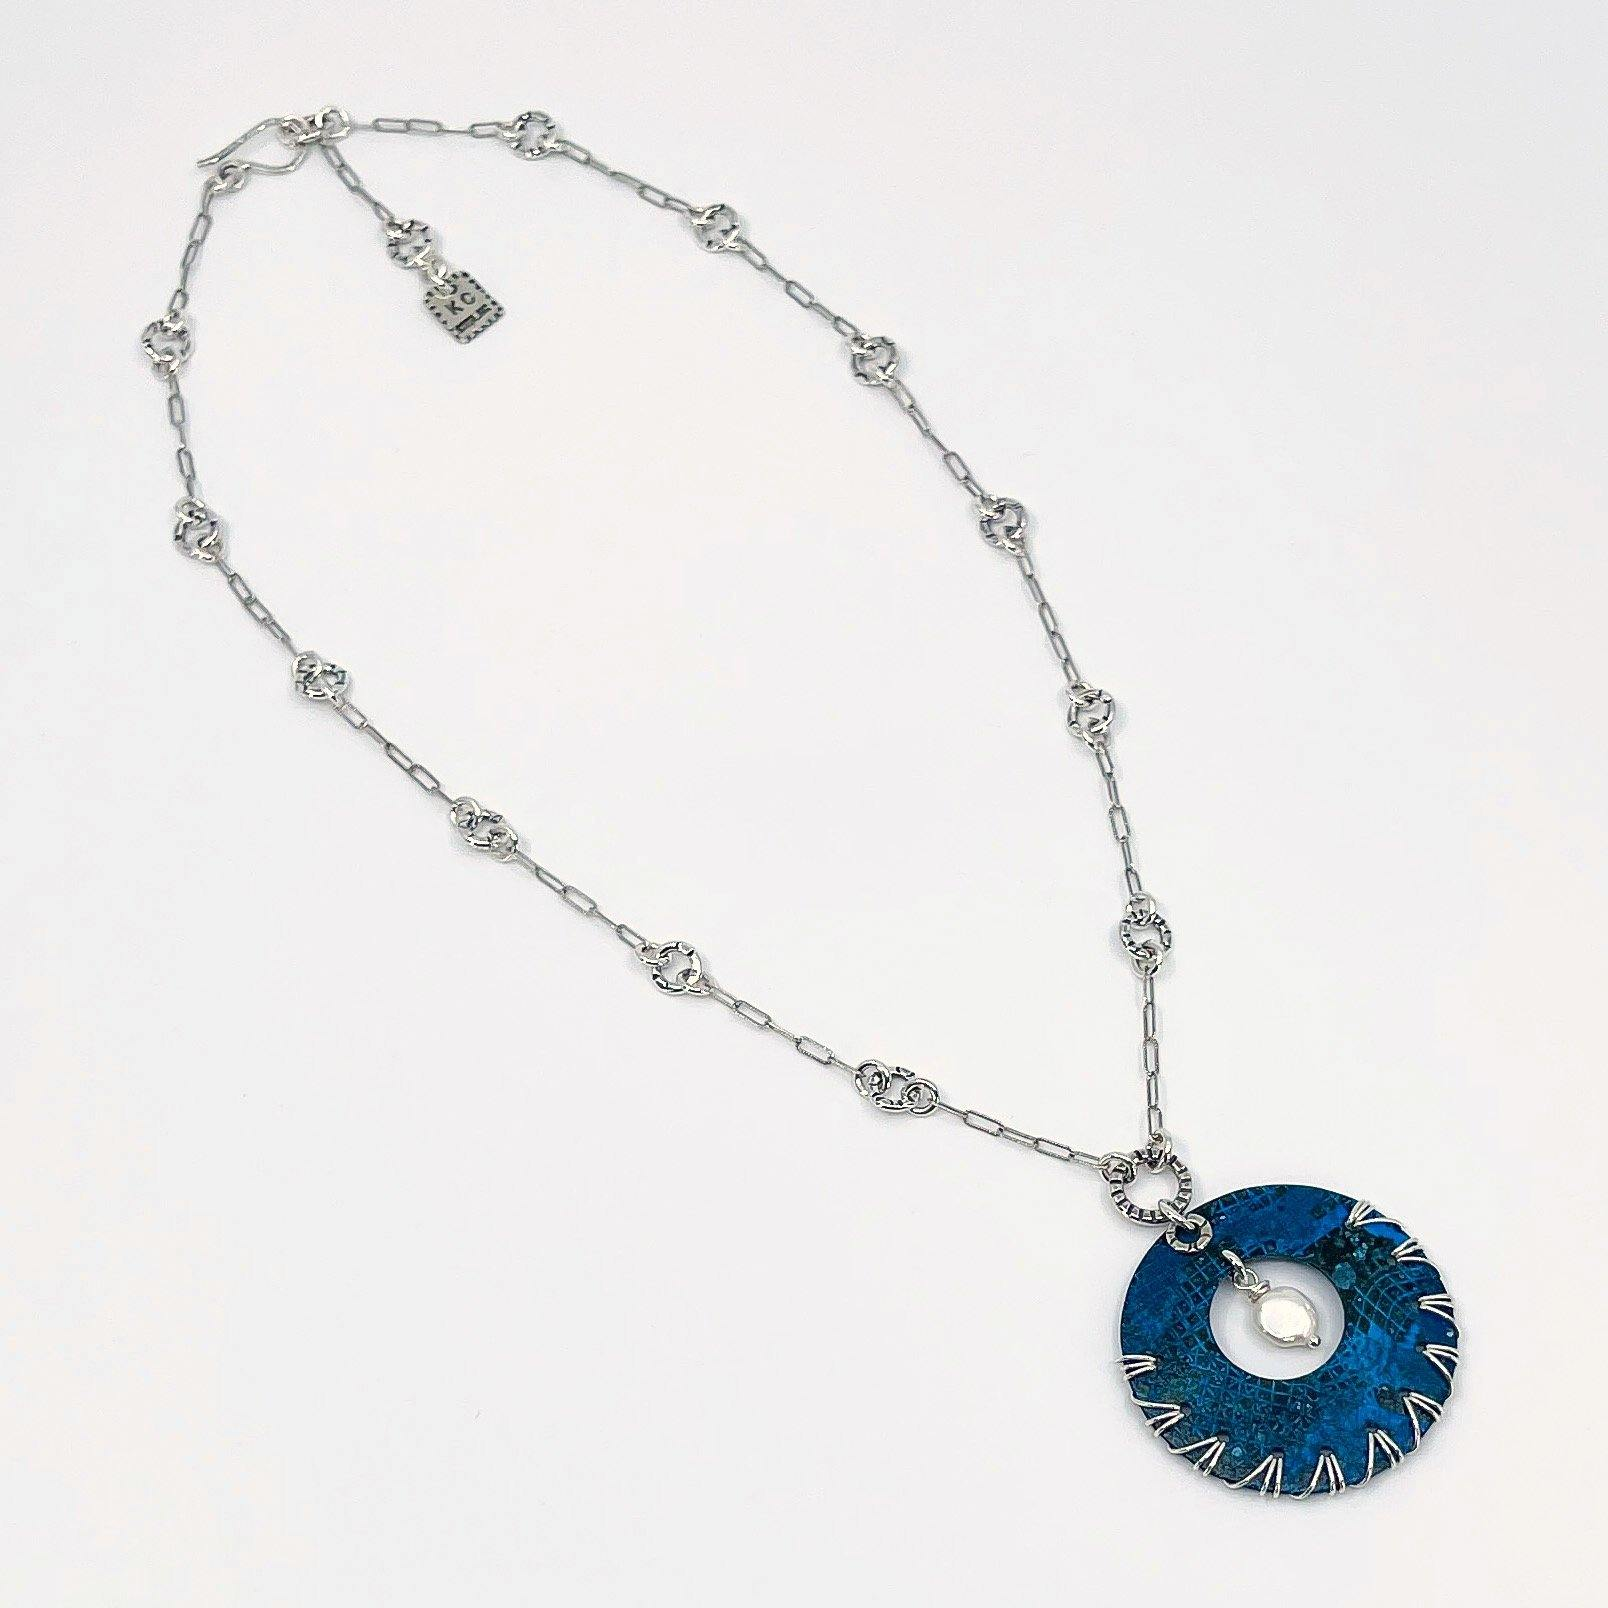 Blue Patina and Sterling Silver Necklace with Freshwater Pearl